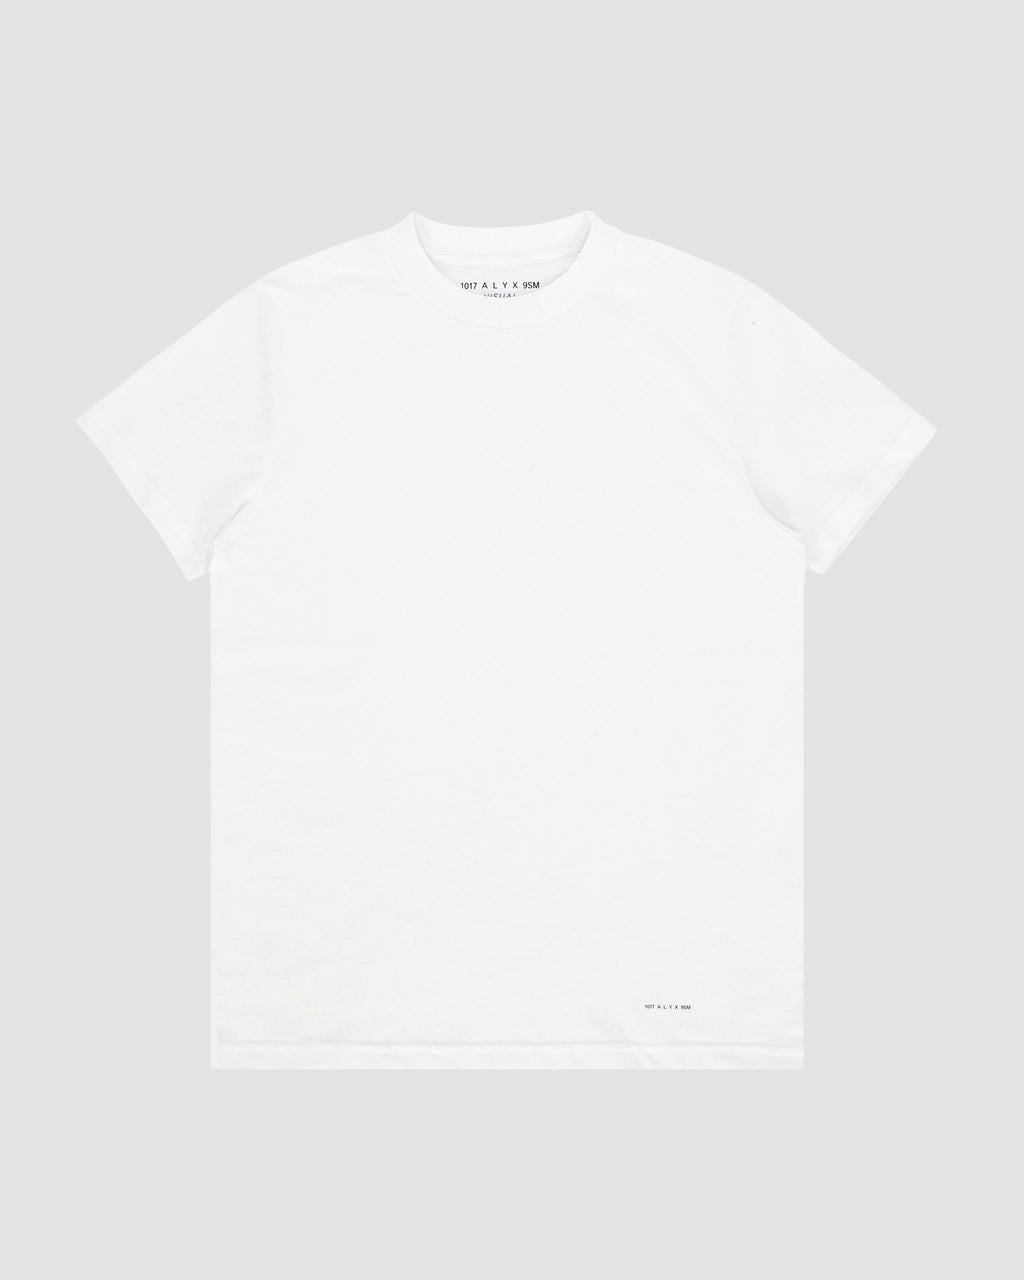 1017 ALYX 9SM | 3 PACK TEE | T-Shirt | F19, Man, T-Shirts, TESTINTEGRATION, Visual, White, Woman